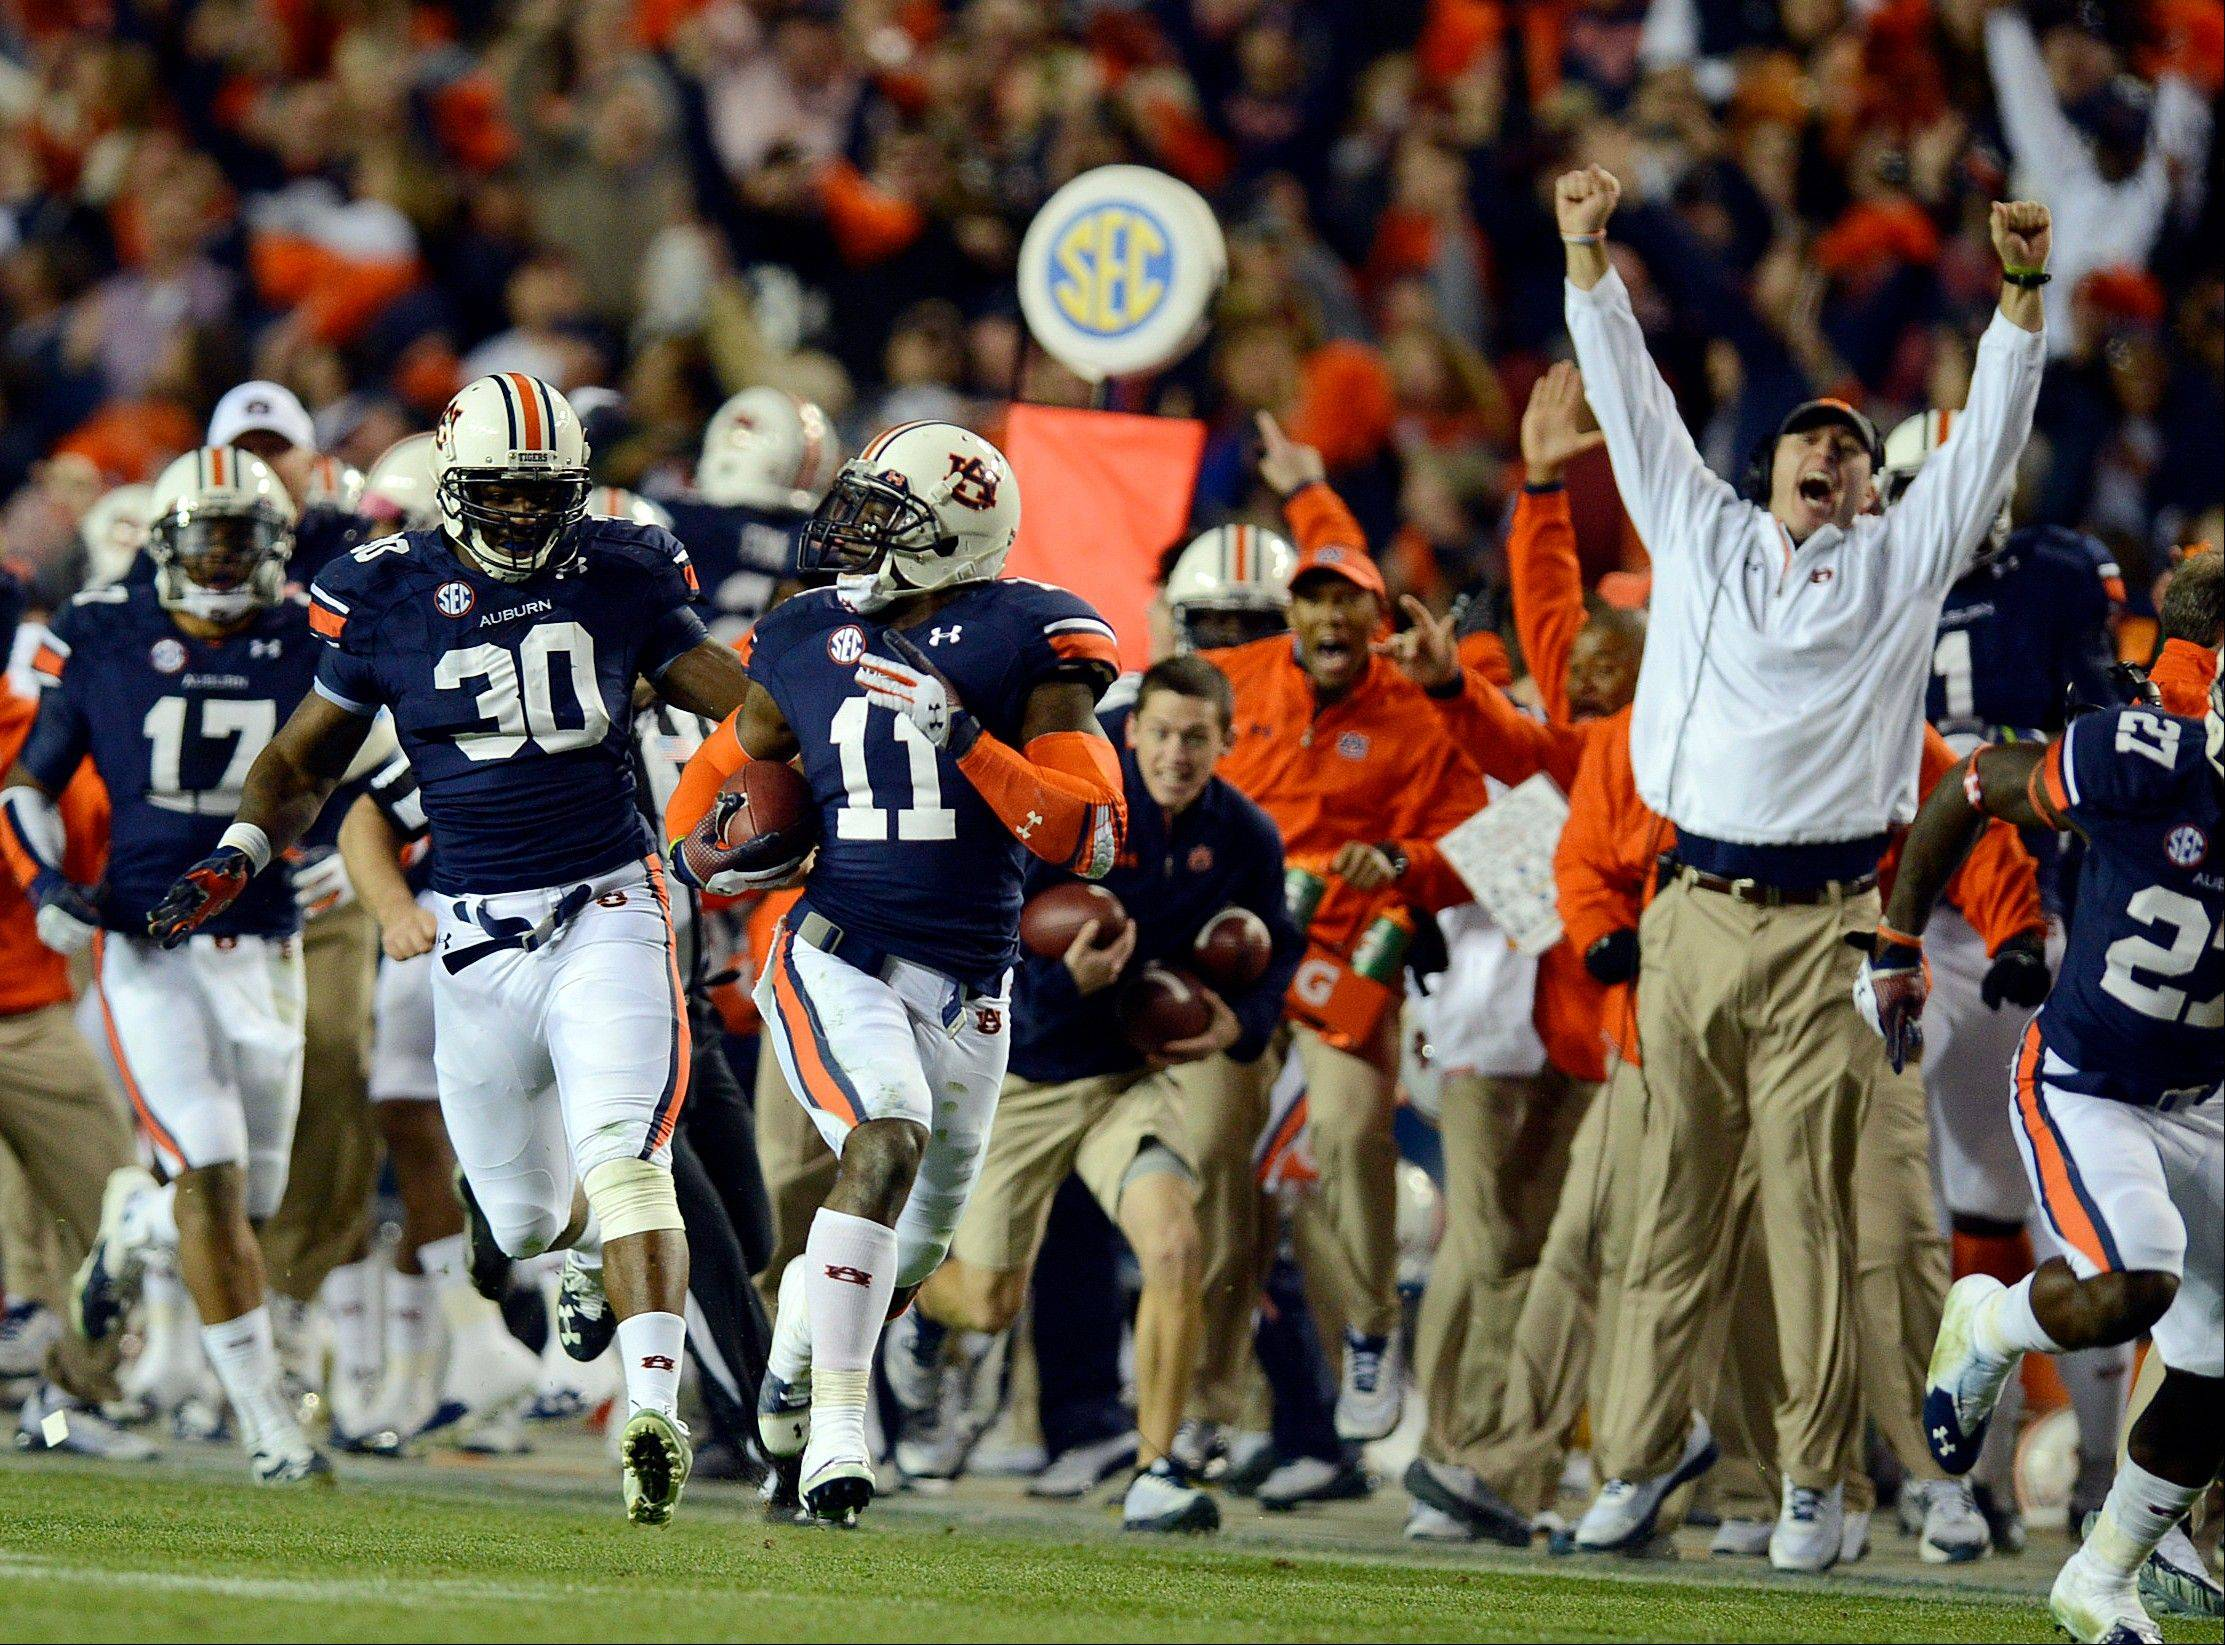 Auburn cornerback Chris Davis returns a missed field-goal attempt more than 100 yards for a touchdown on the final play of last Saturday�s game against Alabama.